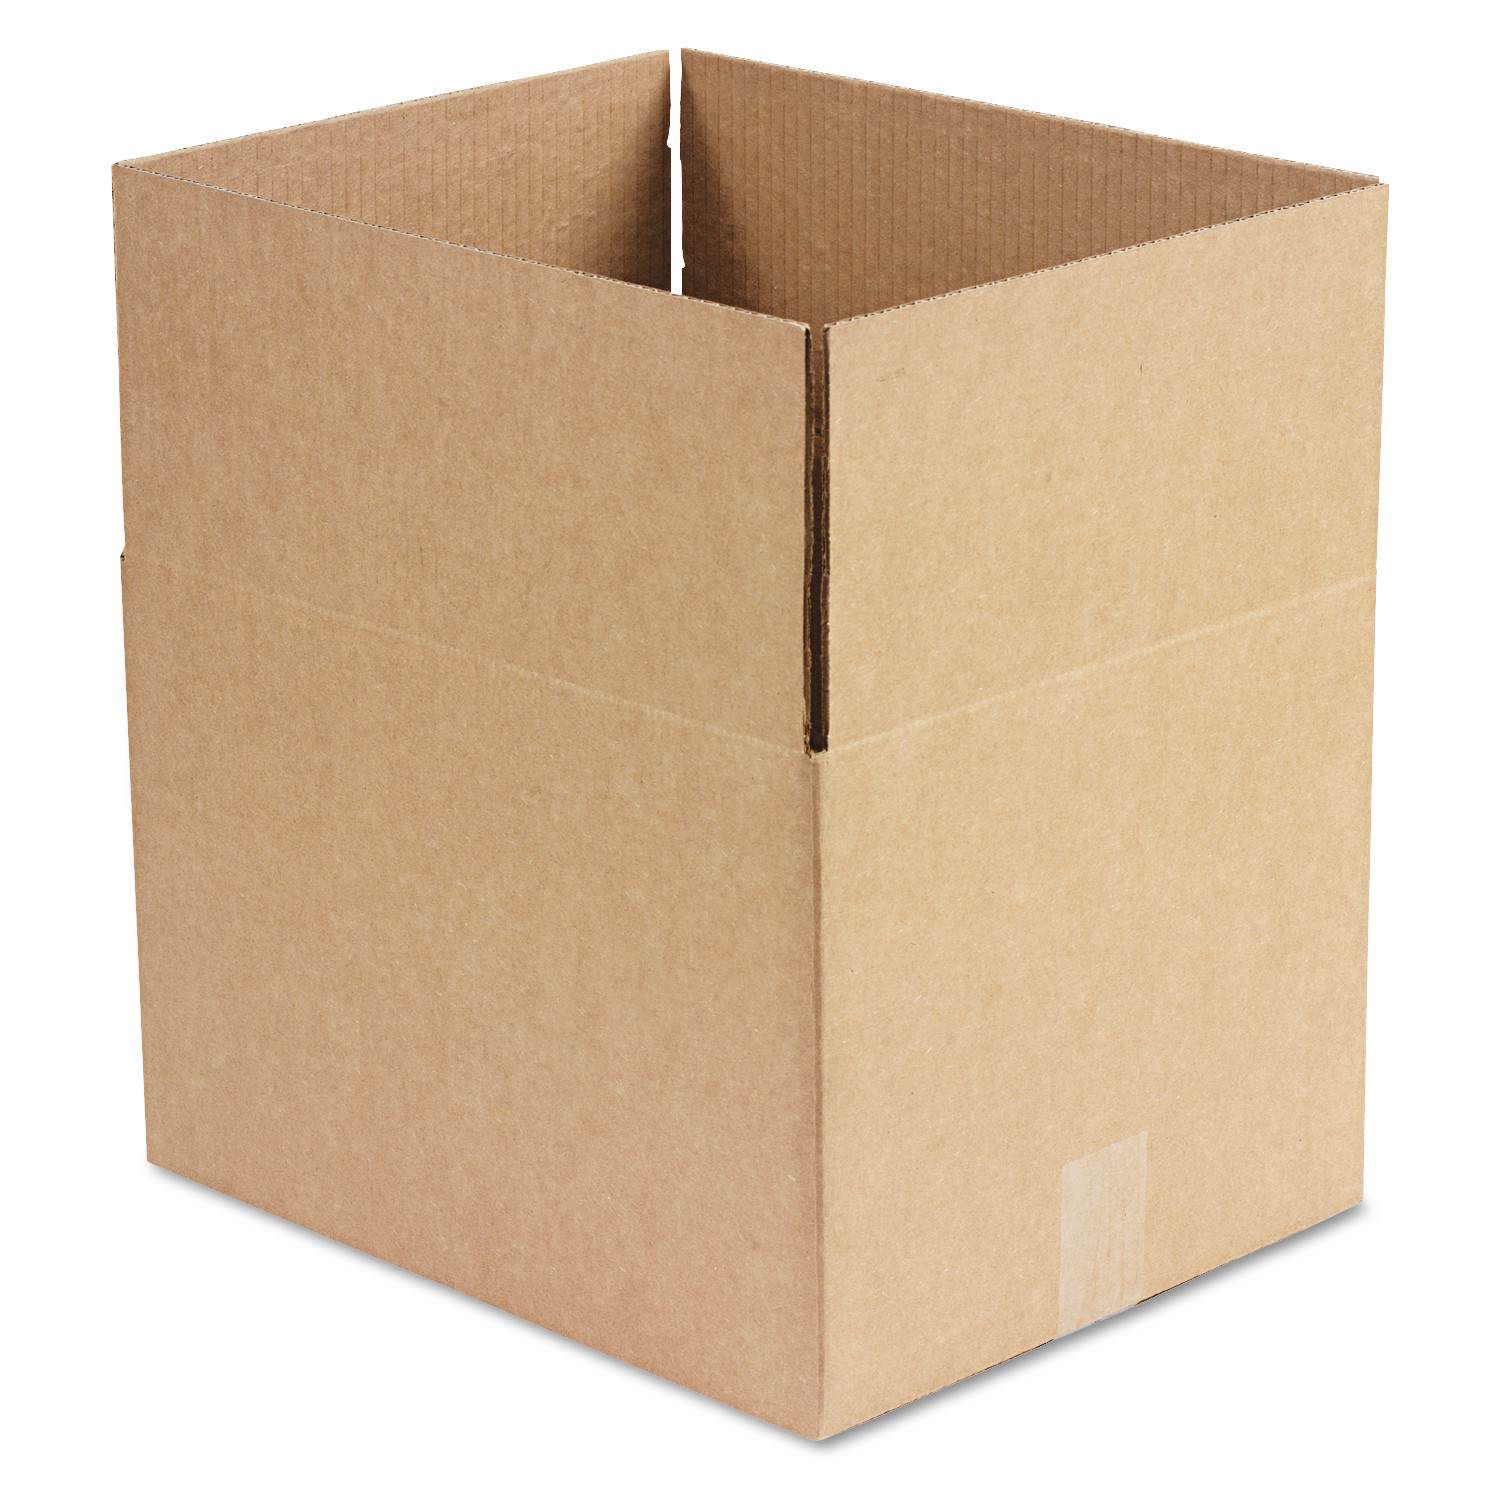 General Supply Brown Corrugated - Fixed-Depth Shipping Boxes, 15l x 12w x 10h, 25/Bundle